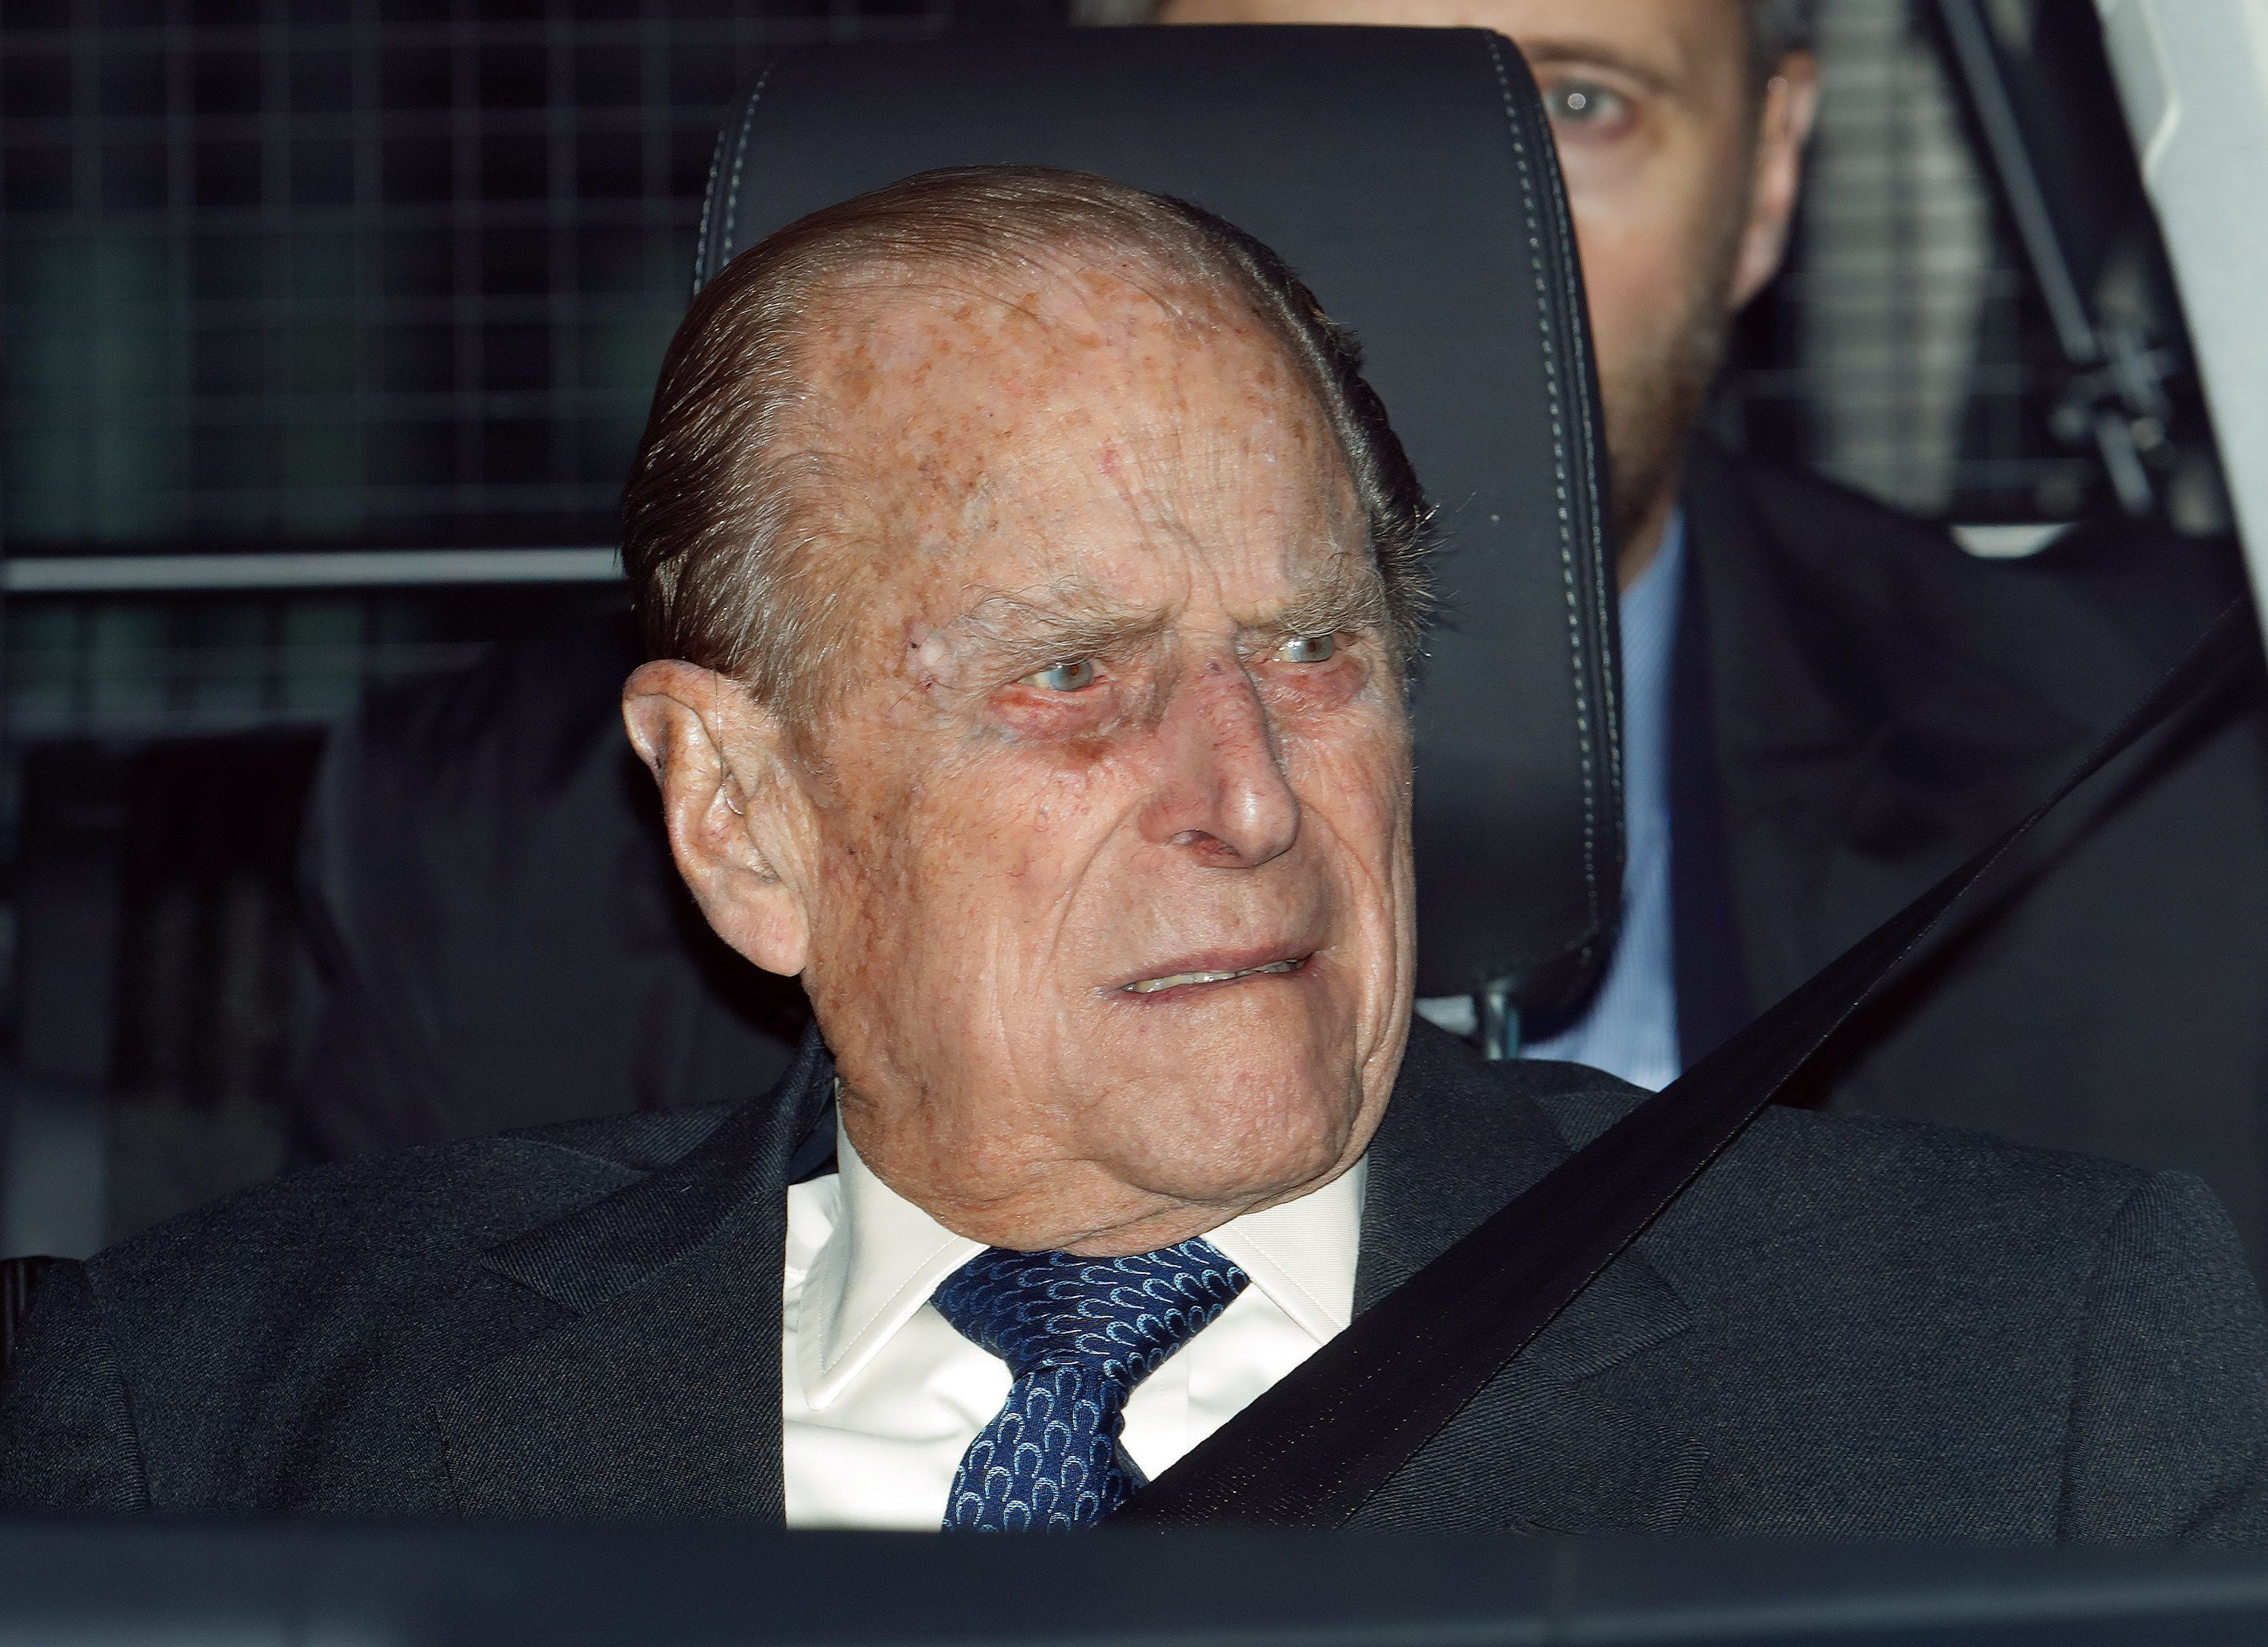 Prince Philip gives up driving, licence in wake of crash